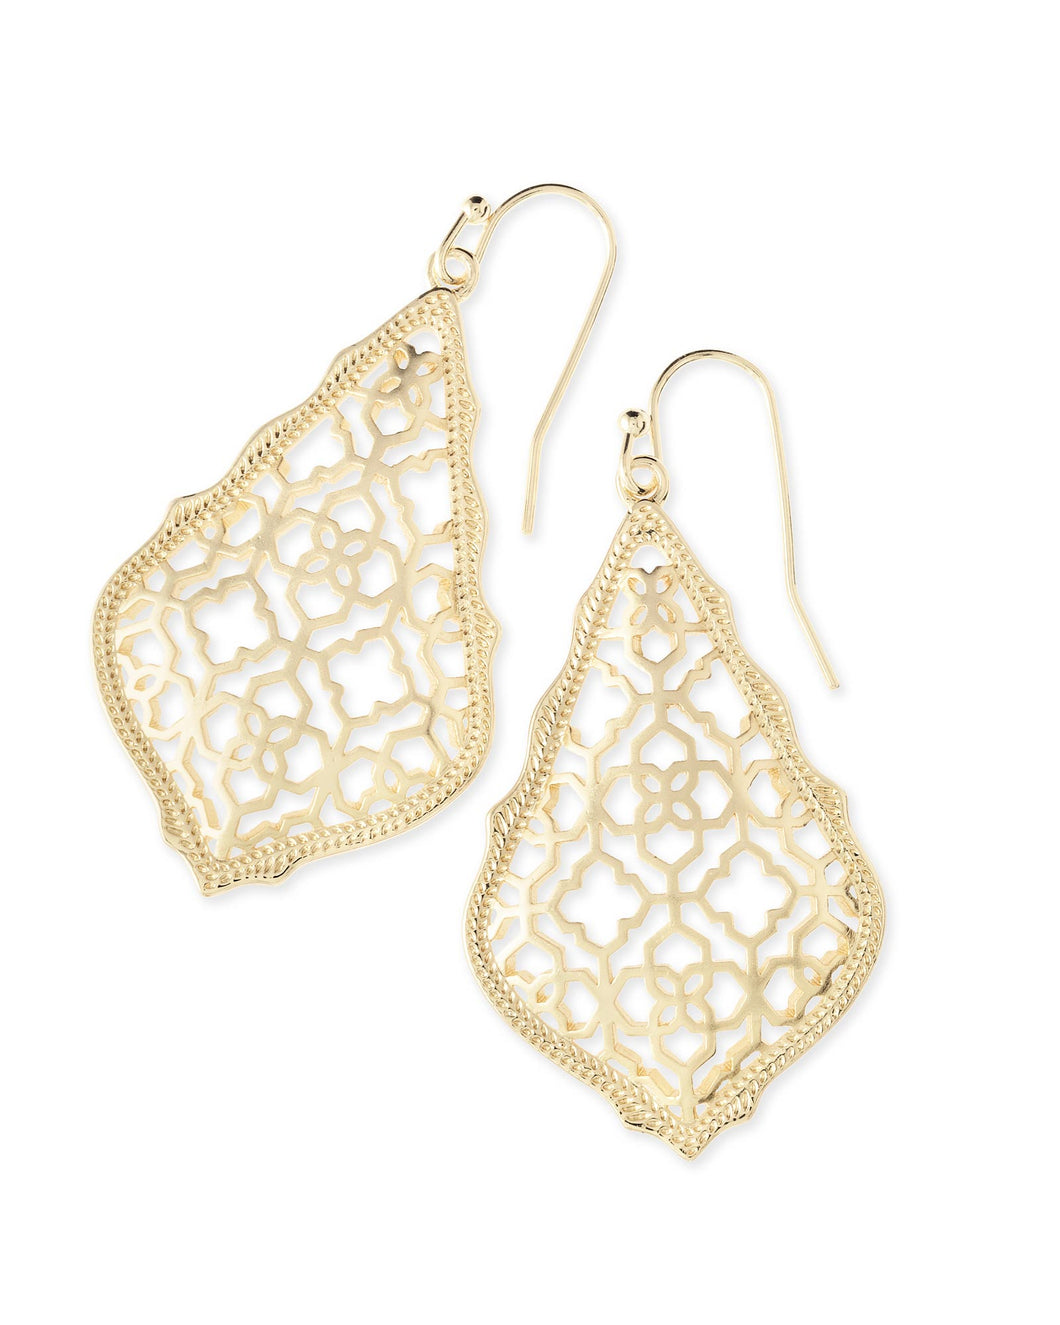 ADDIE GOLD EARRINGS